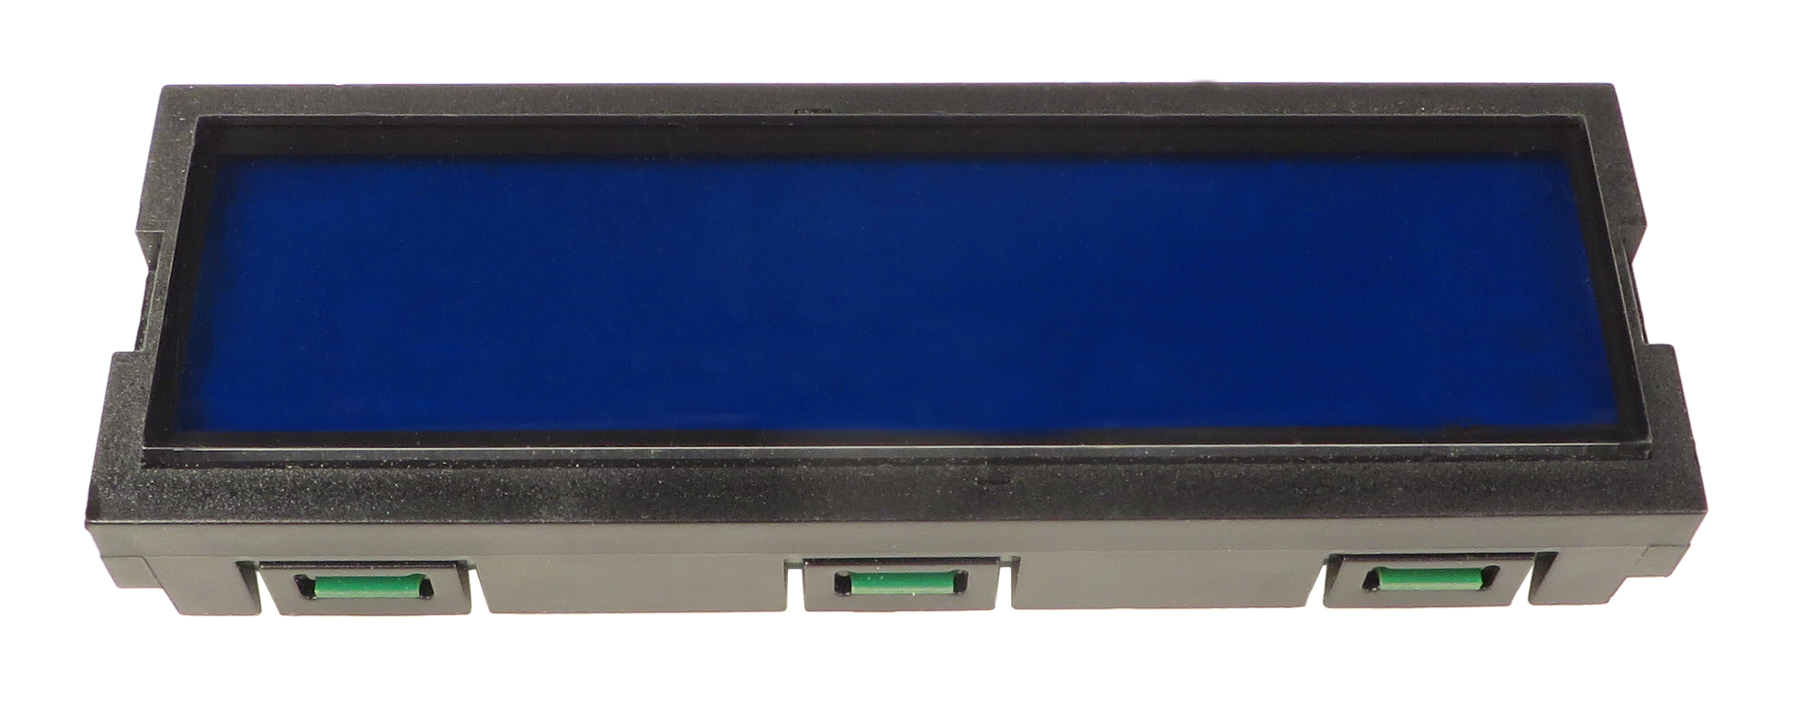 TC Electronic LCD 7B80522001 Tc Electronic LCD Display für G-Major 1 / G-Major 2